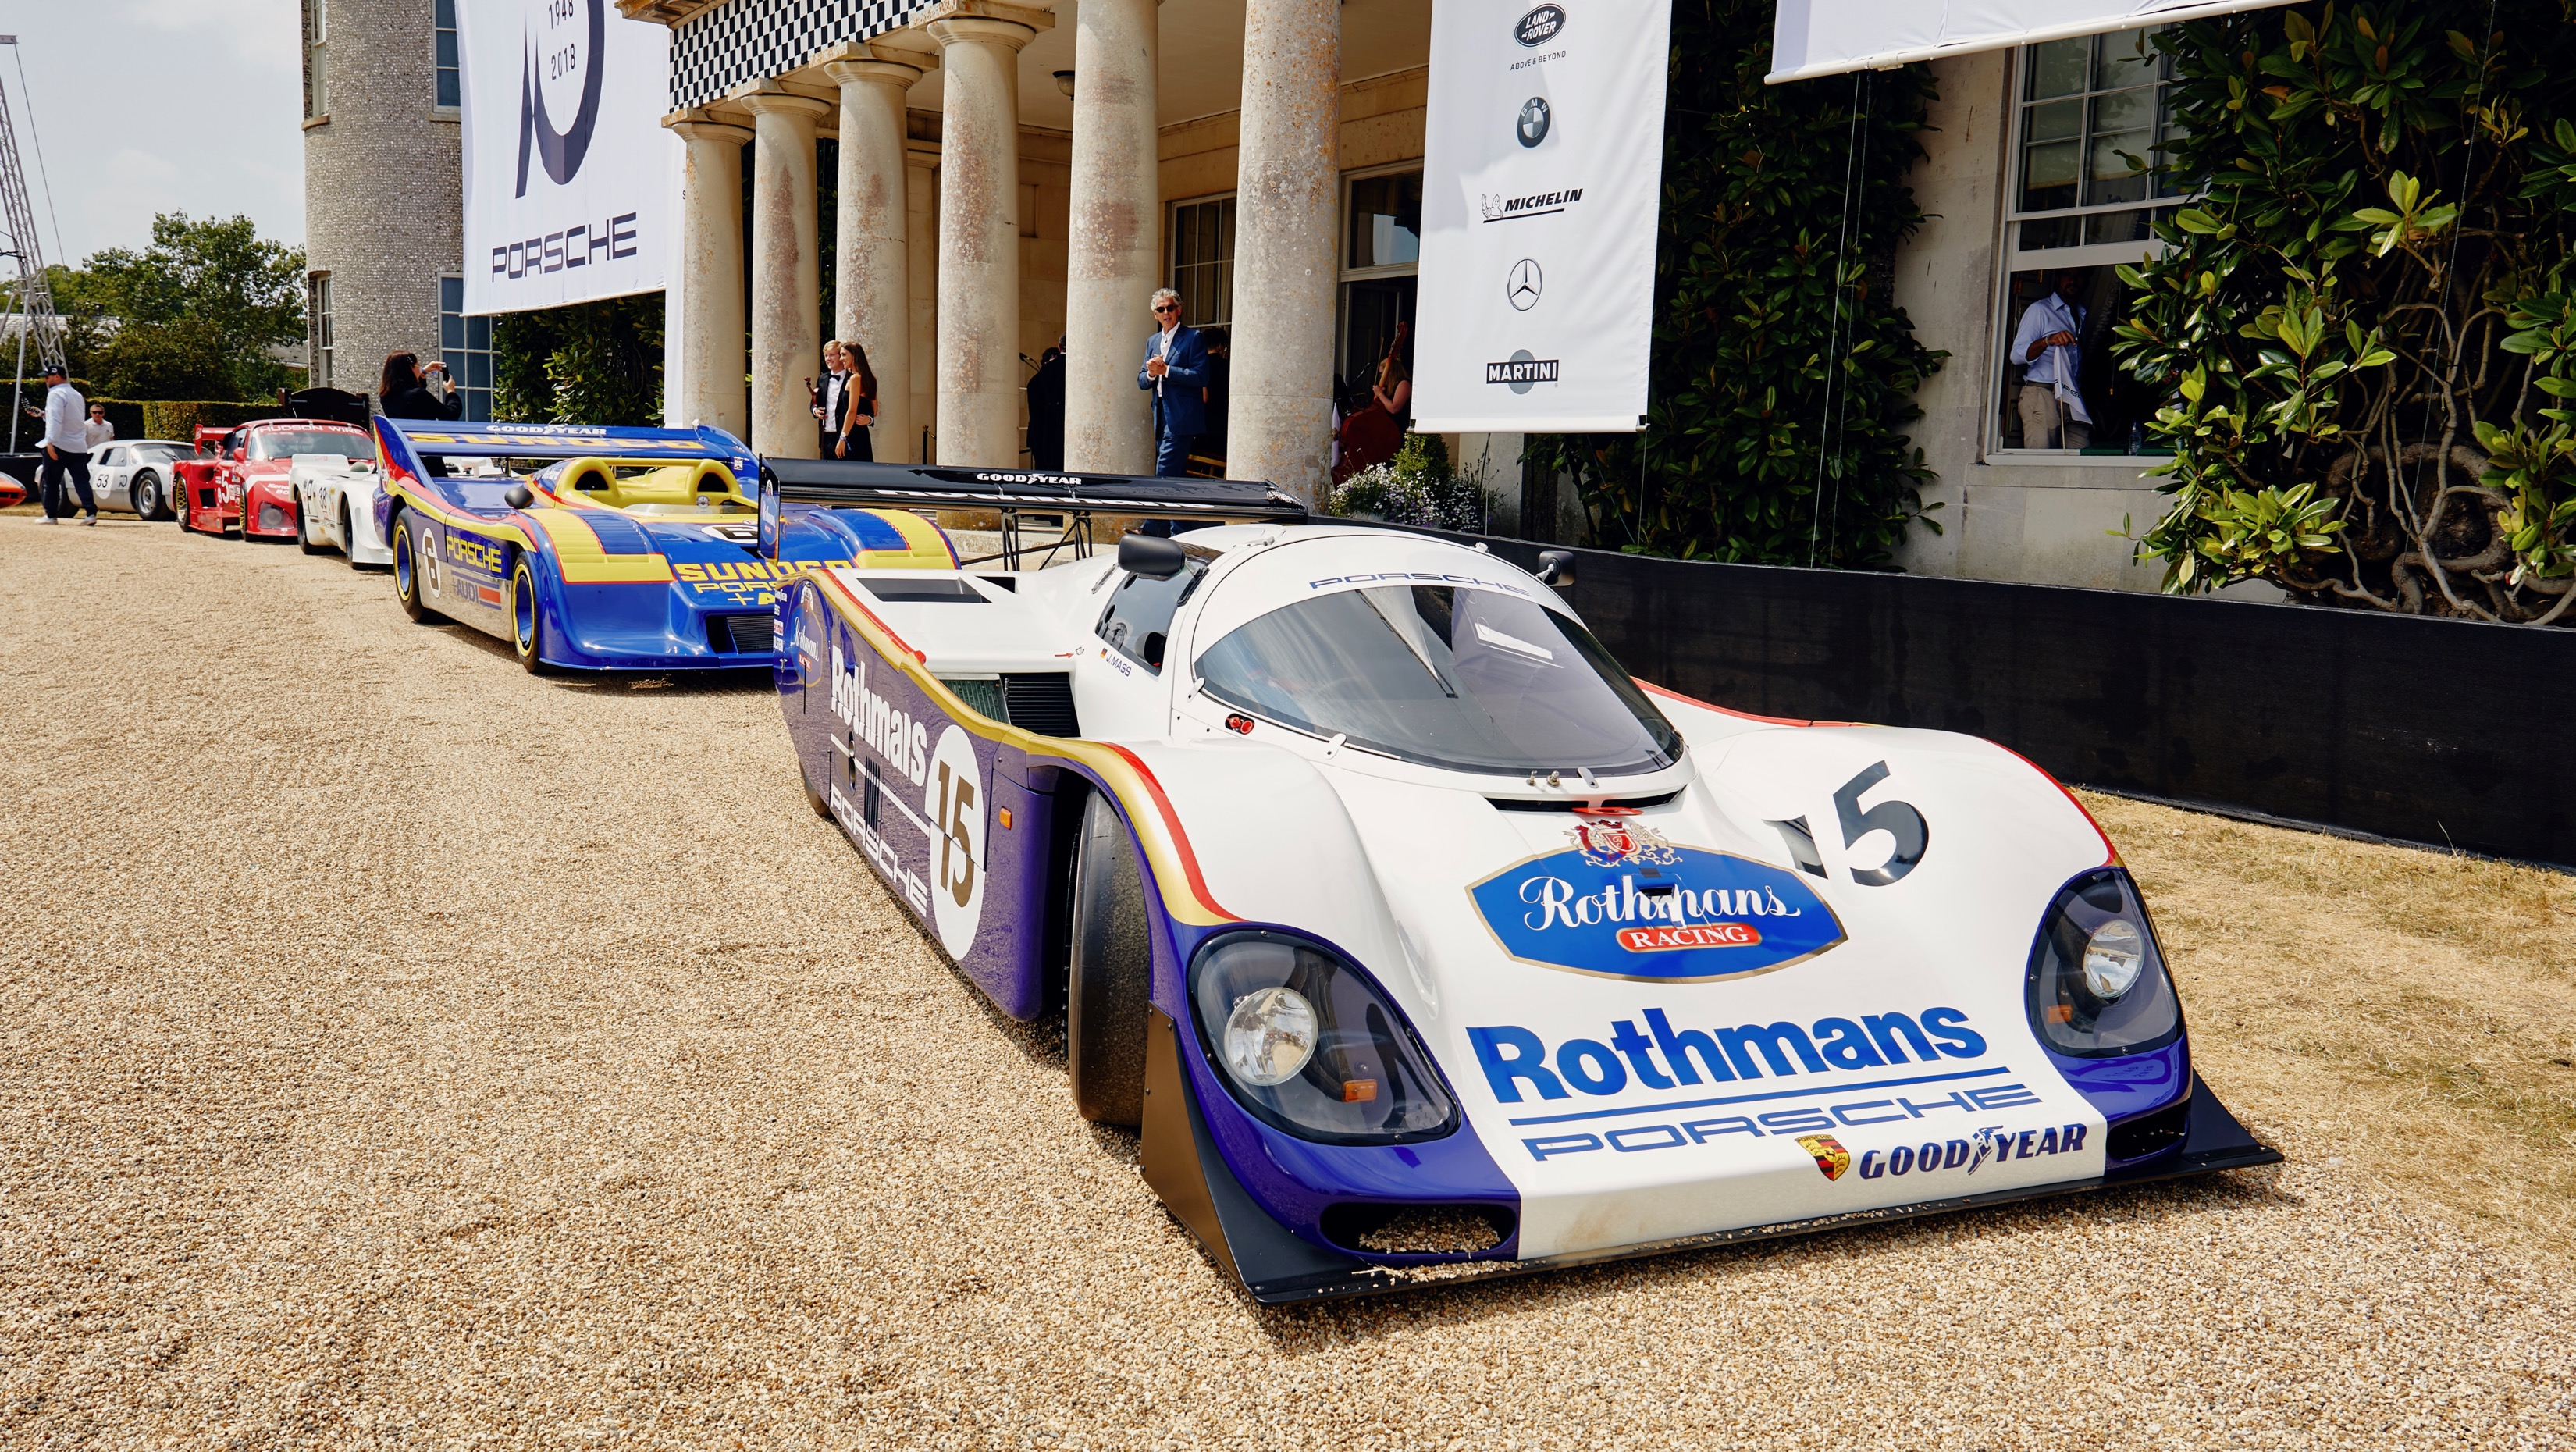 Porsche 962 C (1987), Goodwood Festival of Speed, 2018, Porsche AG